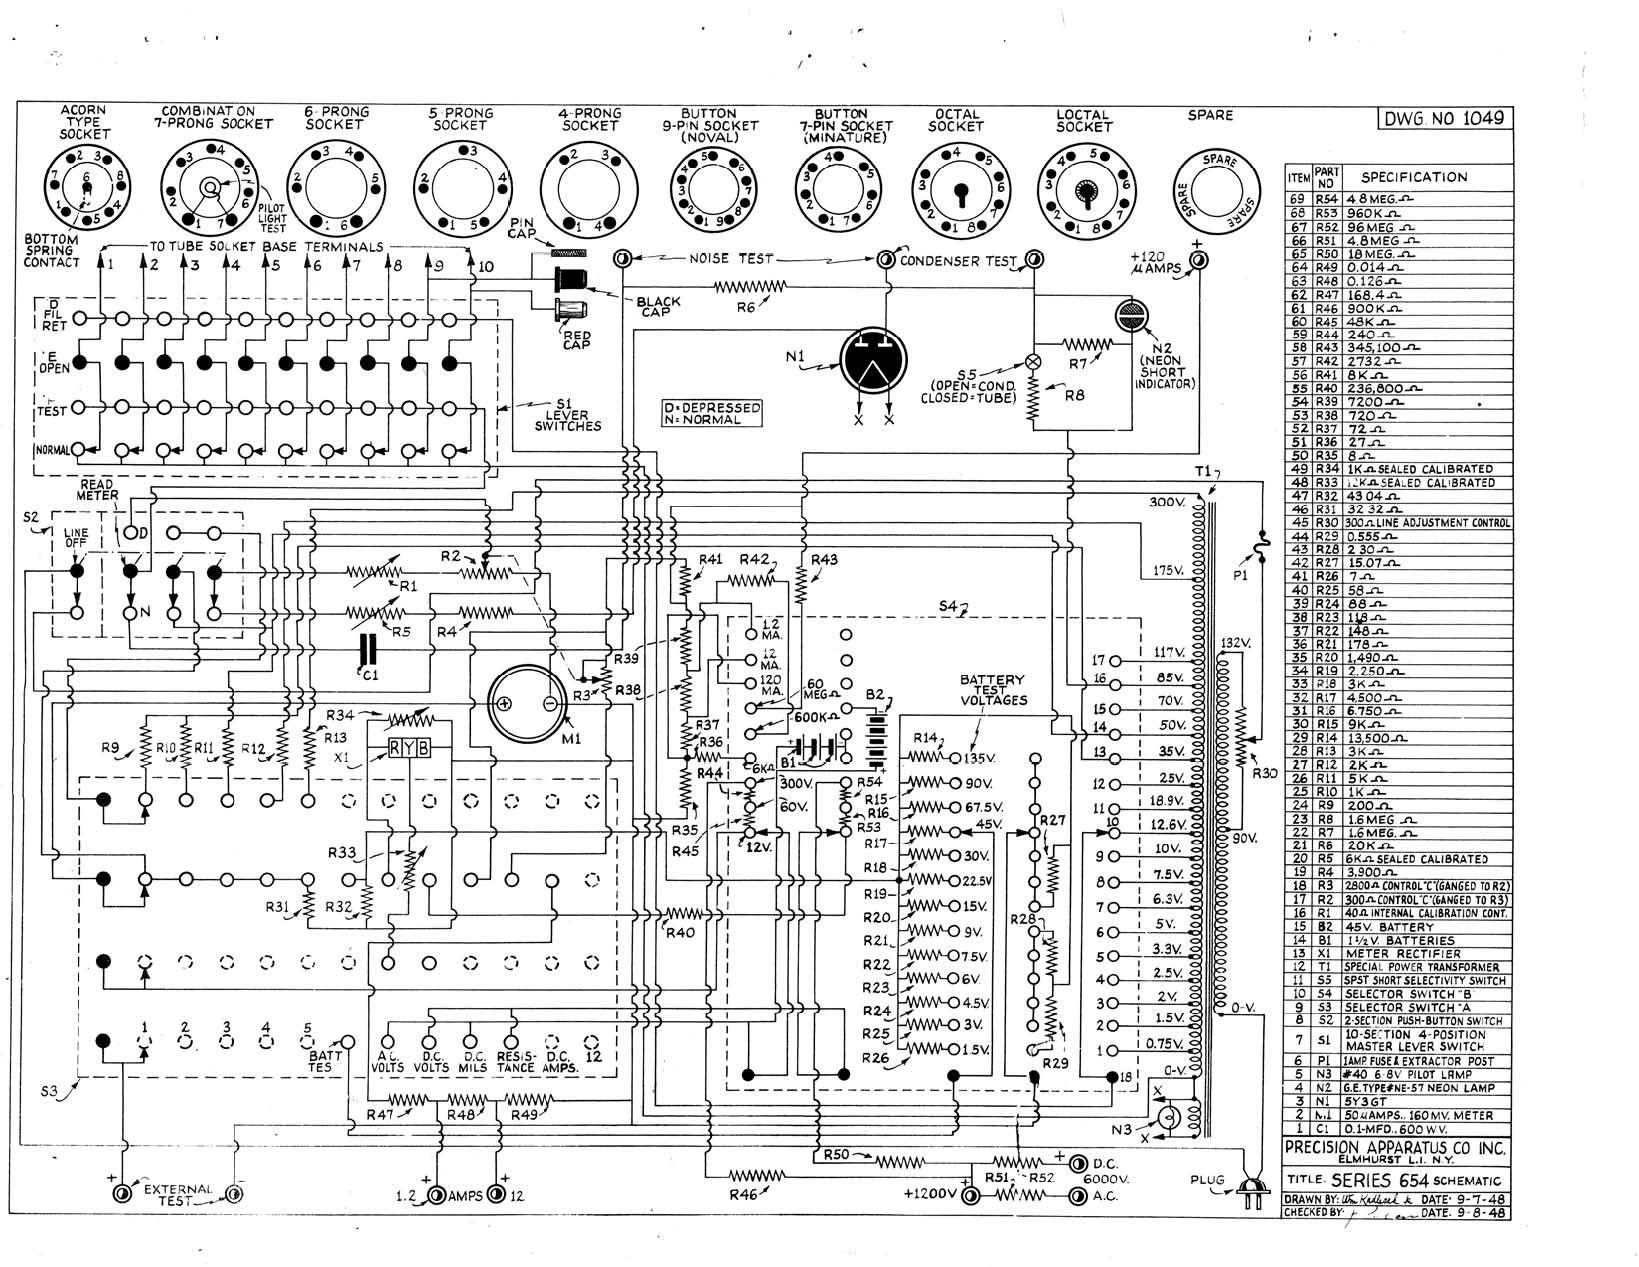 Precision Tube Tester Data on cable tester schematic, tube power supply schematic, vacuum tube schematic symbol, battery tester schematic, vacuum tube alarm clock, led tester schematic, vacuum amplifier schematic, vacuum tube voltmeter schematic, vacuum tube diagram, capacitor tester schematic, vacuum tube amplifier, vacuum tube pin layout, diode schematic, vacuum generator schematic, vacuum tube preamp schematic, vacuum tube radio schematics, vacuum tube computer schematic, vacuum tube power supply design, vacuum tube tv, vacuum tube testers retail store,